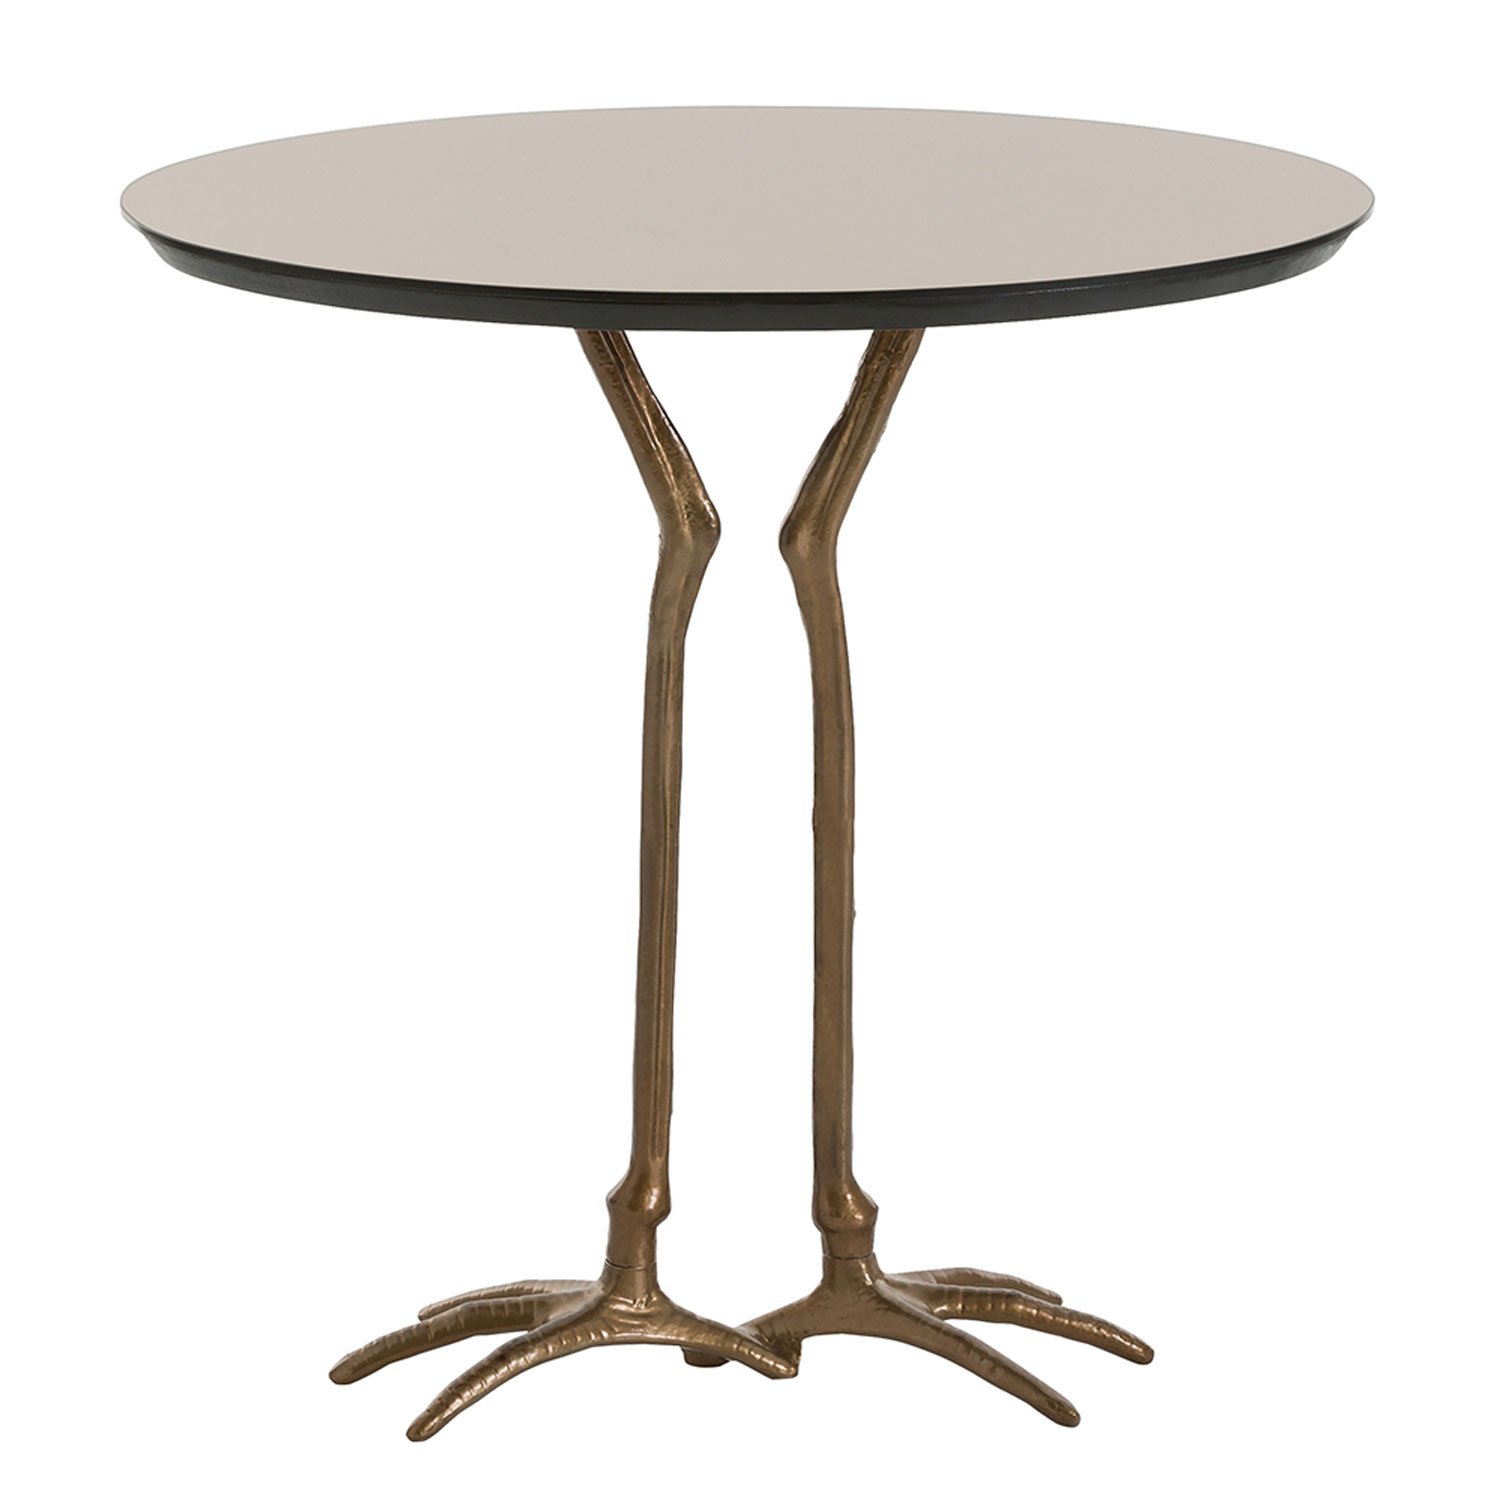 arteriors home emilio antique brass accent table bellacor hover zoom everyday centerpieces gaming dock target threshold vintage white finish foldable side battery powered indoor